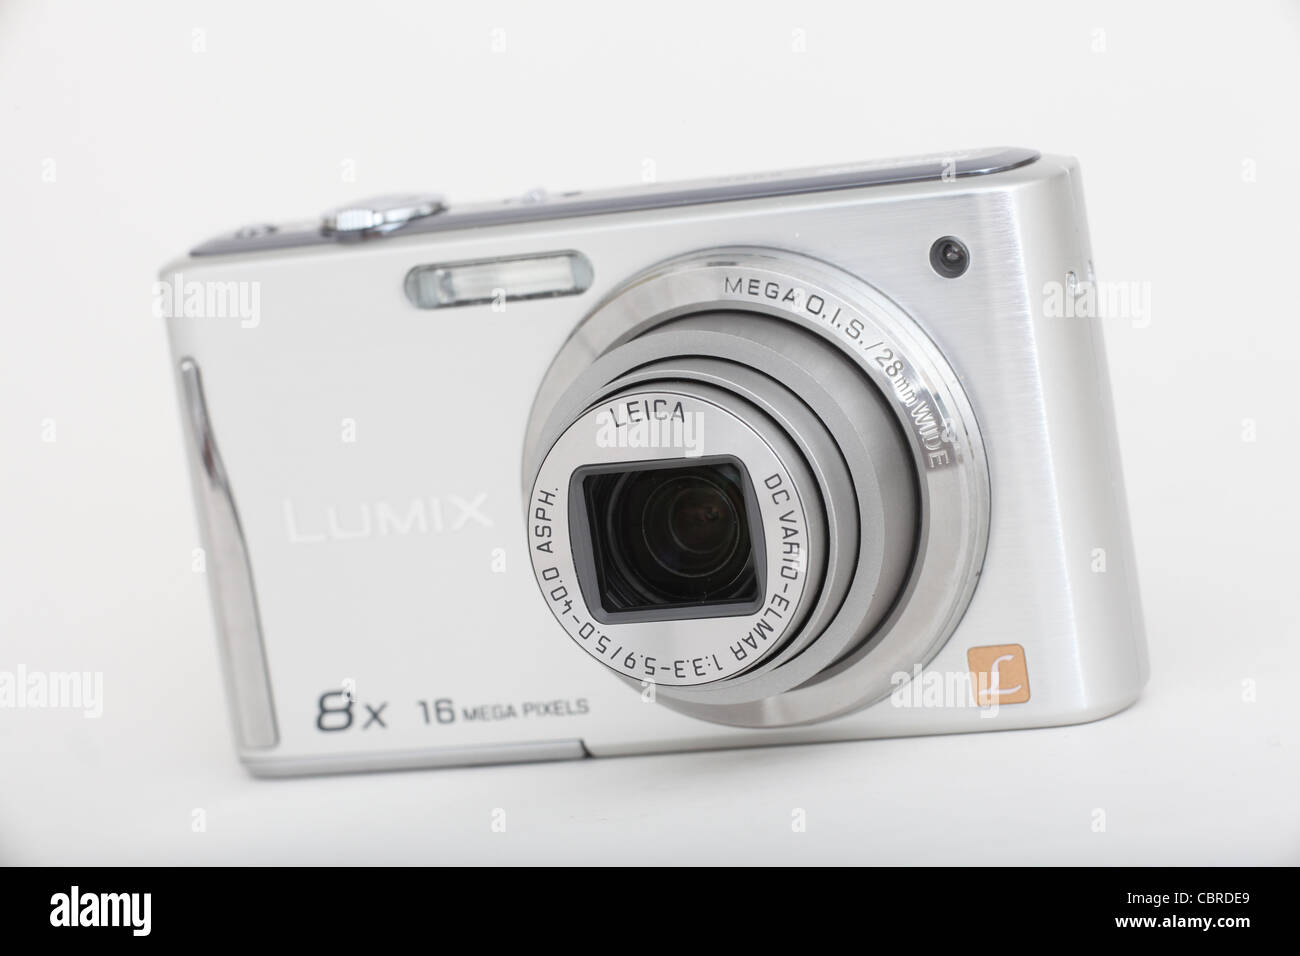 Lumix digital compact camera. Picture by James Boardman. - Stock Image